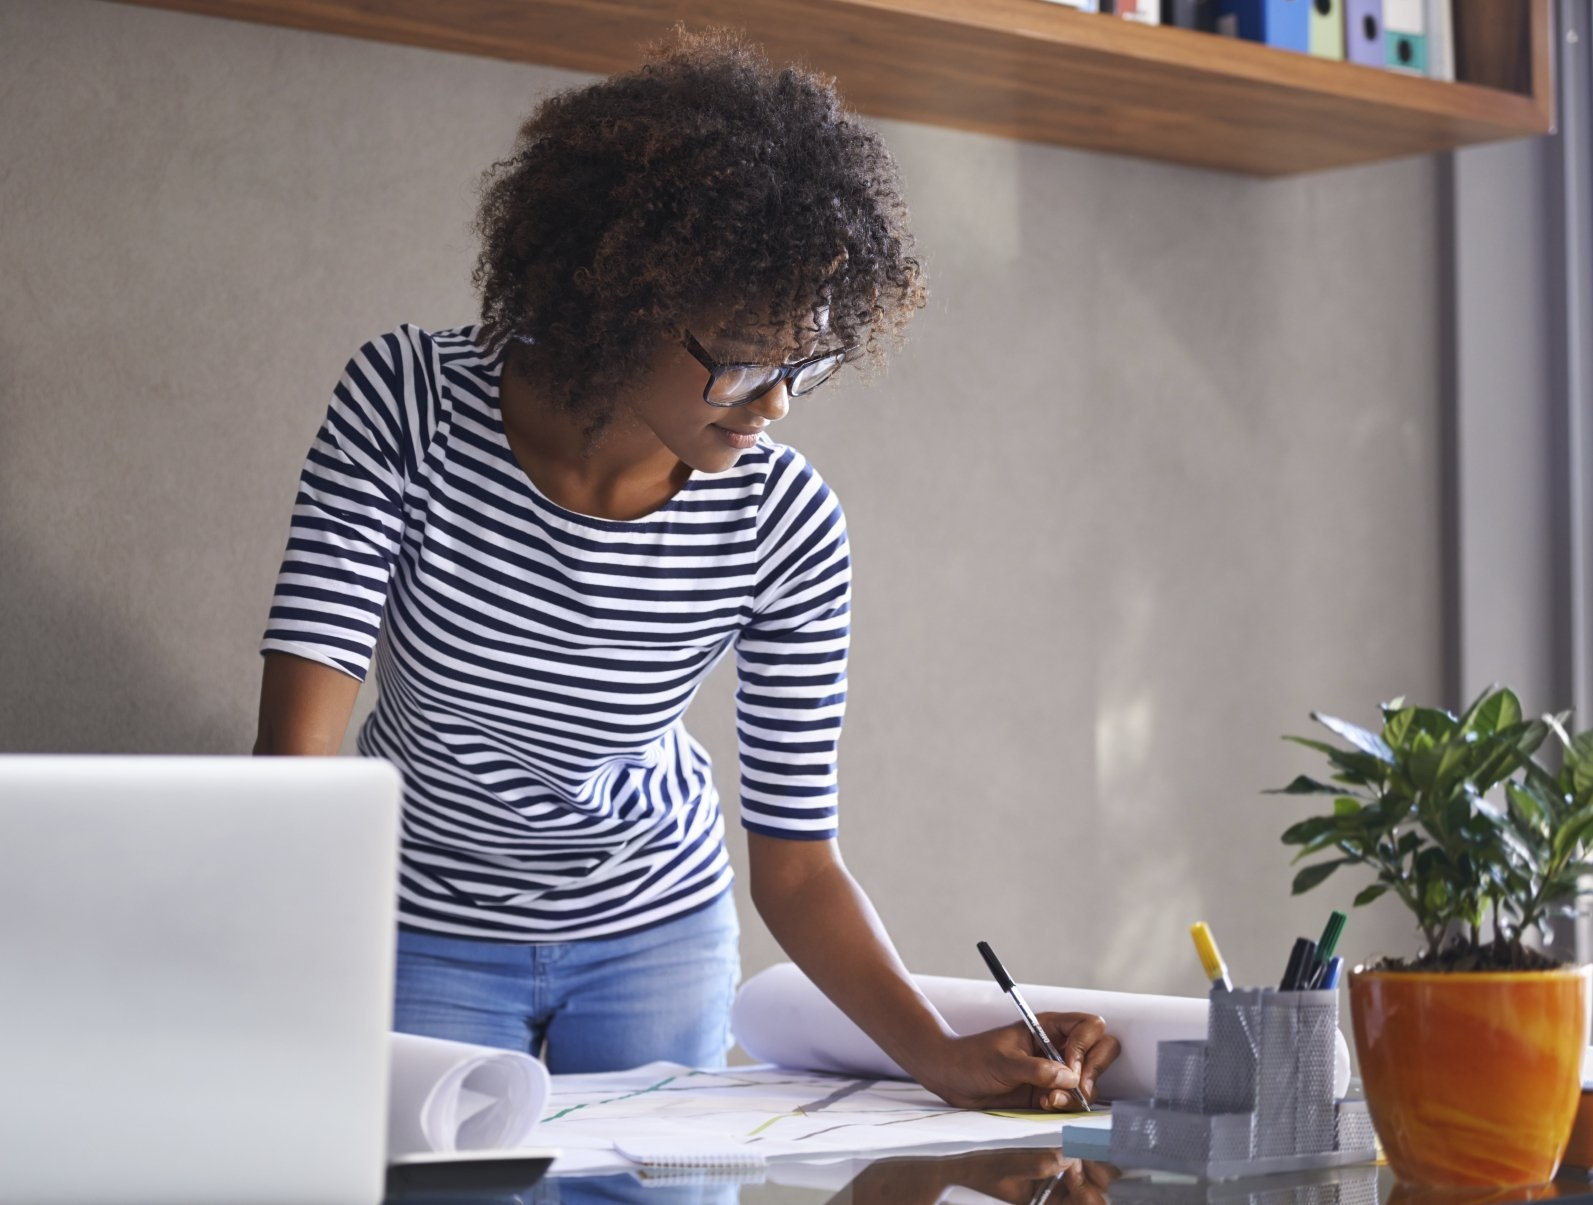 Why are more women actively pursuing their career goals?